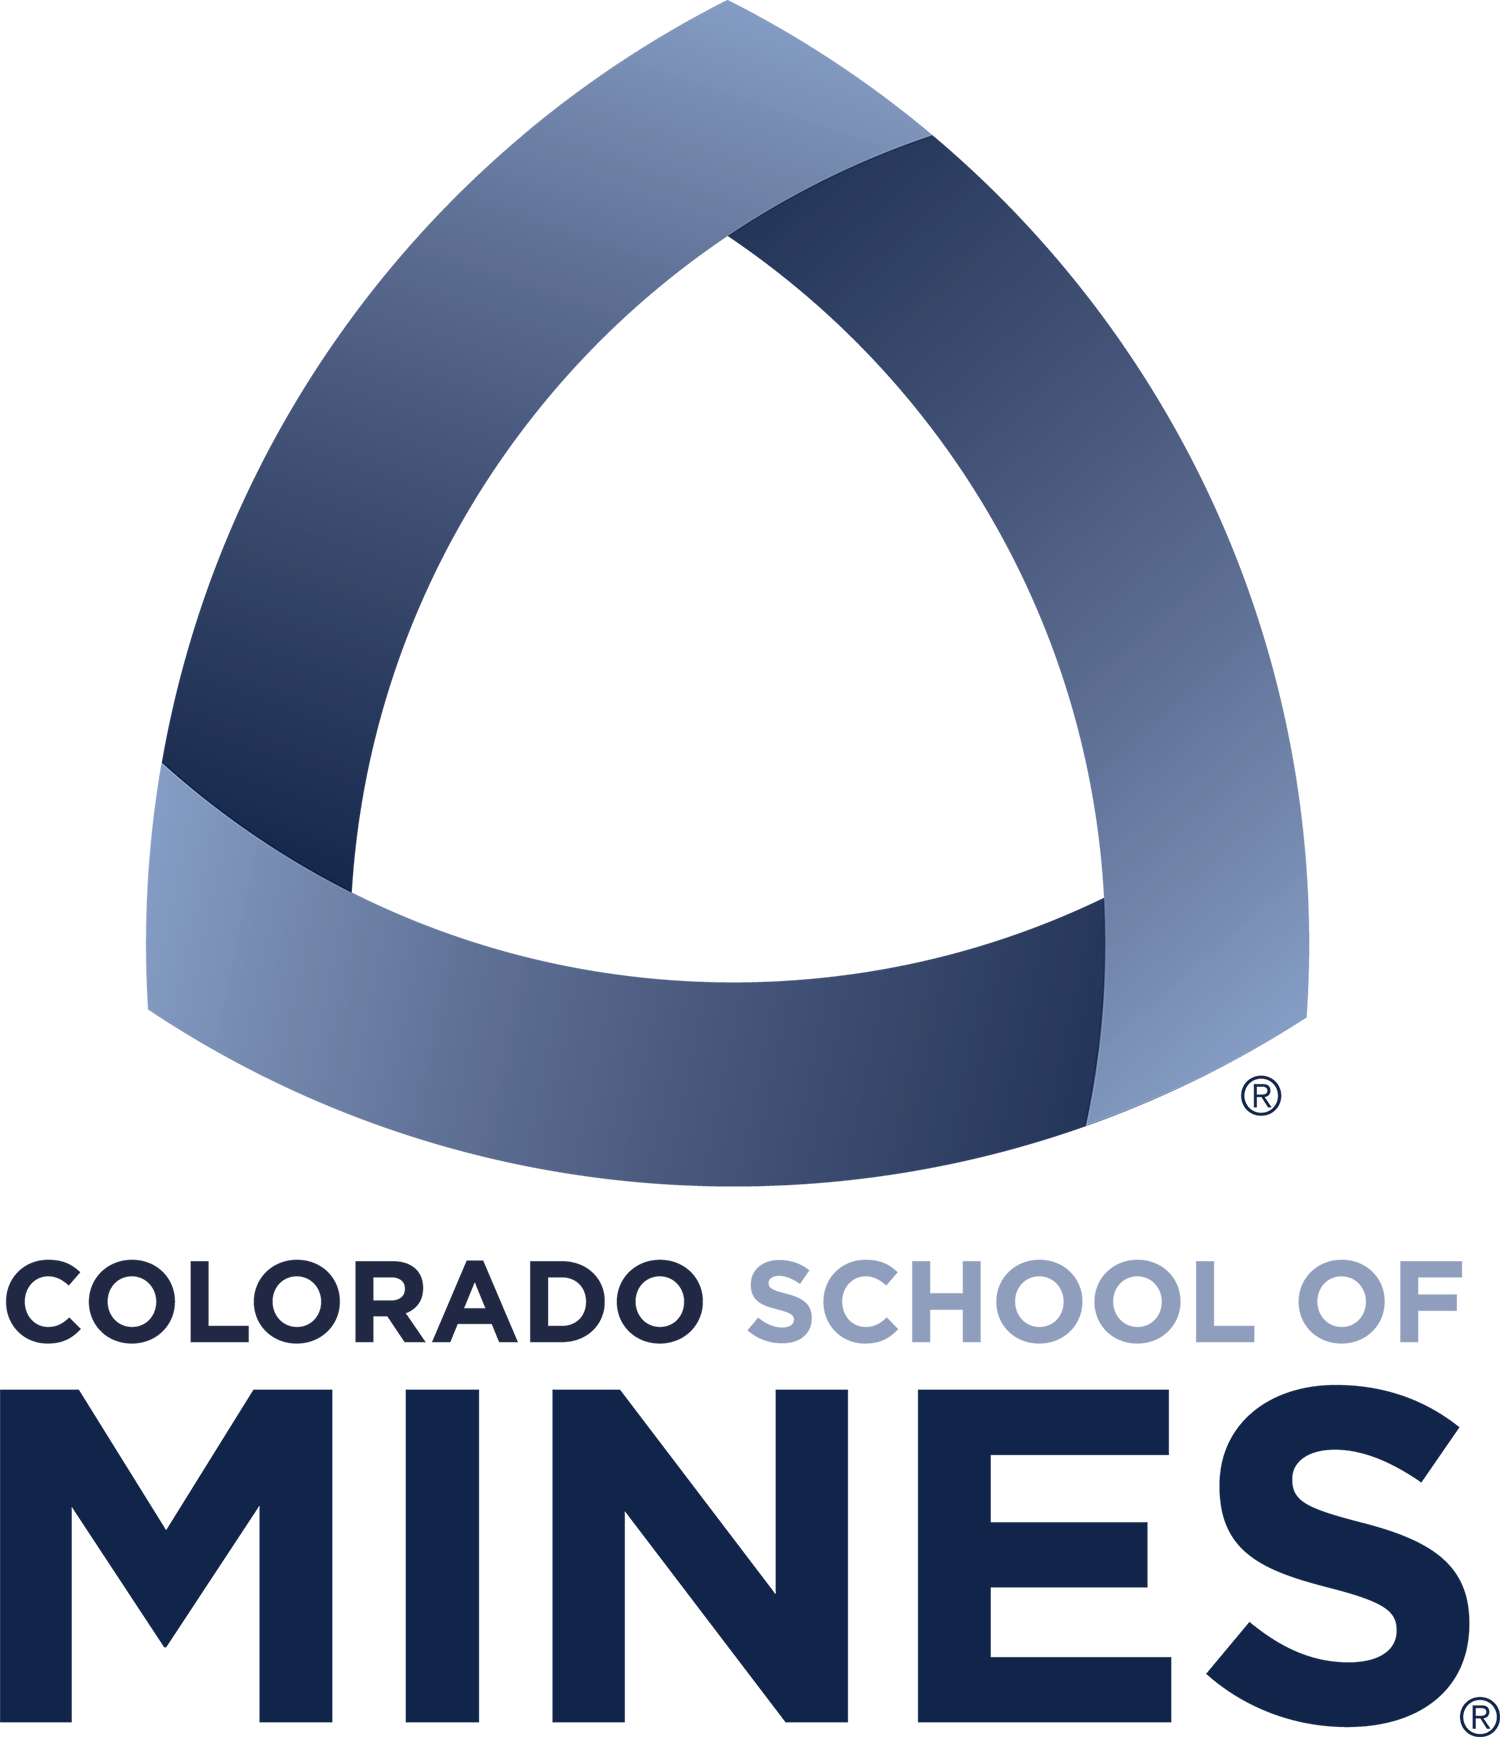 mines-stacked-logo-4c-rgb.png